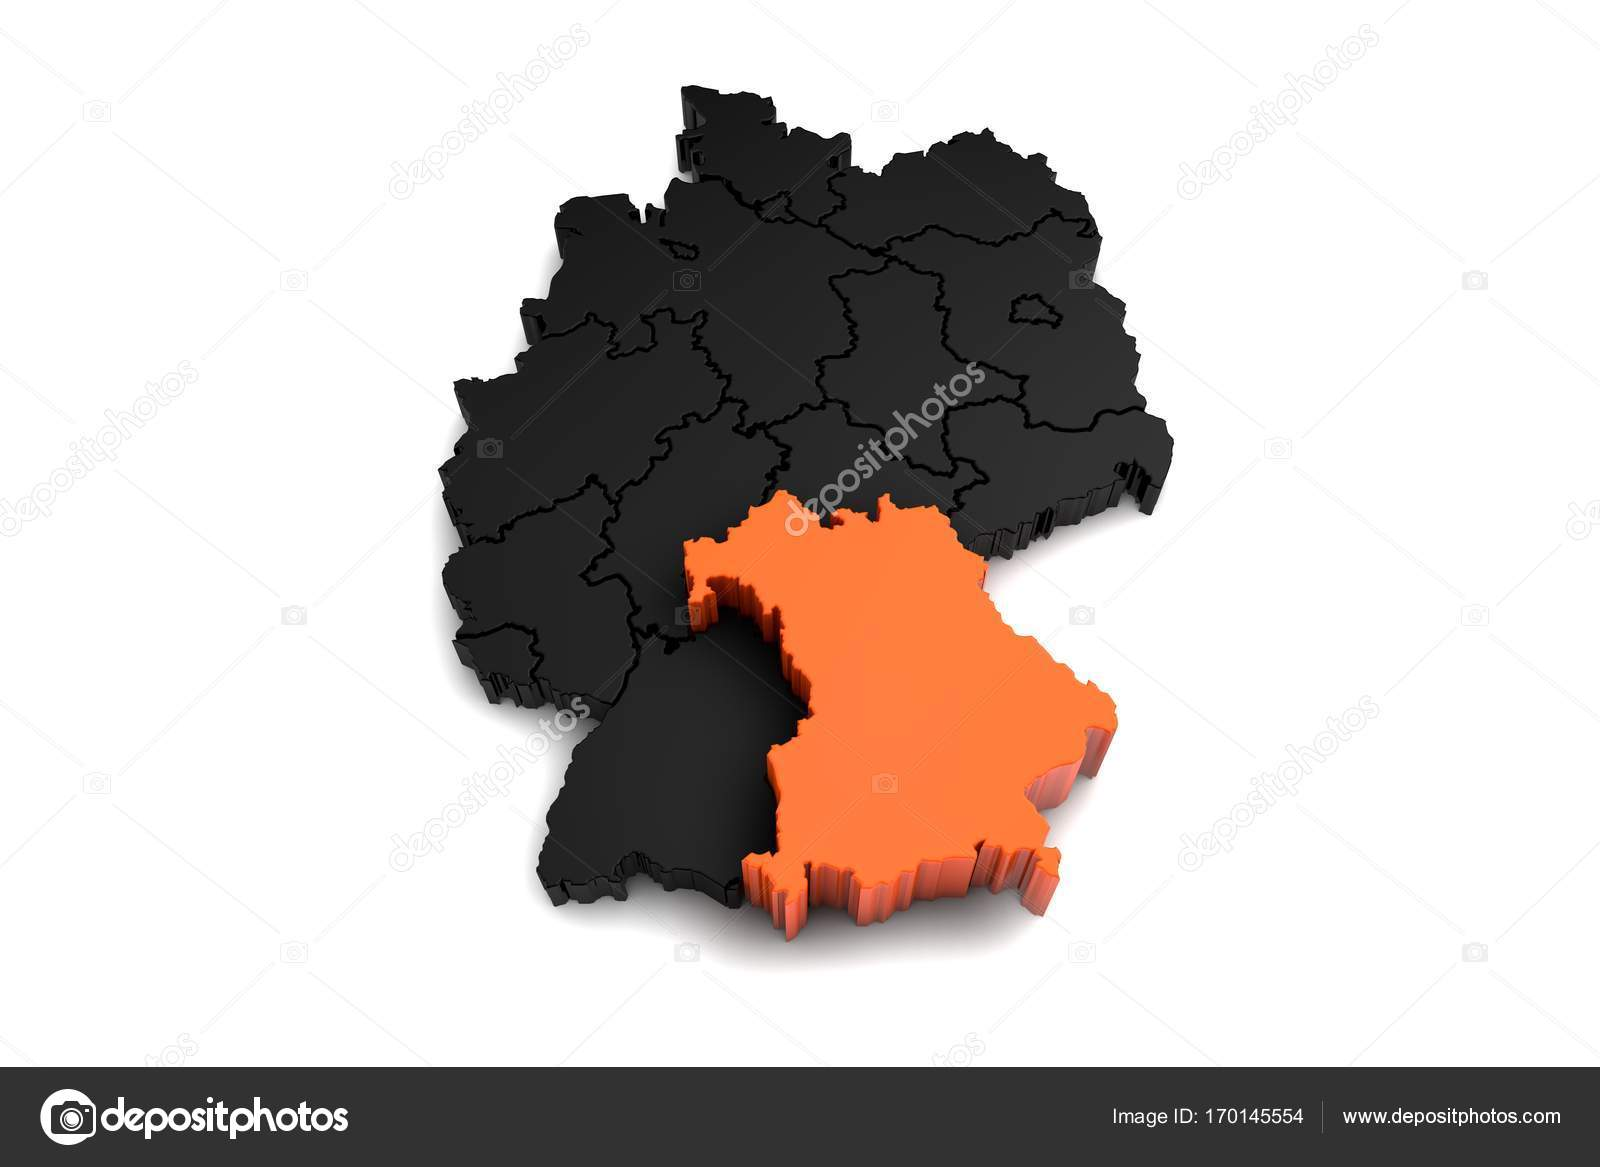 Black germany map with bayern region highlighted in orange3d black germany map with bayern region highlighted in orange3d render photo by viking75 gumiabroncs Choice Image